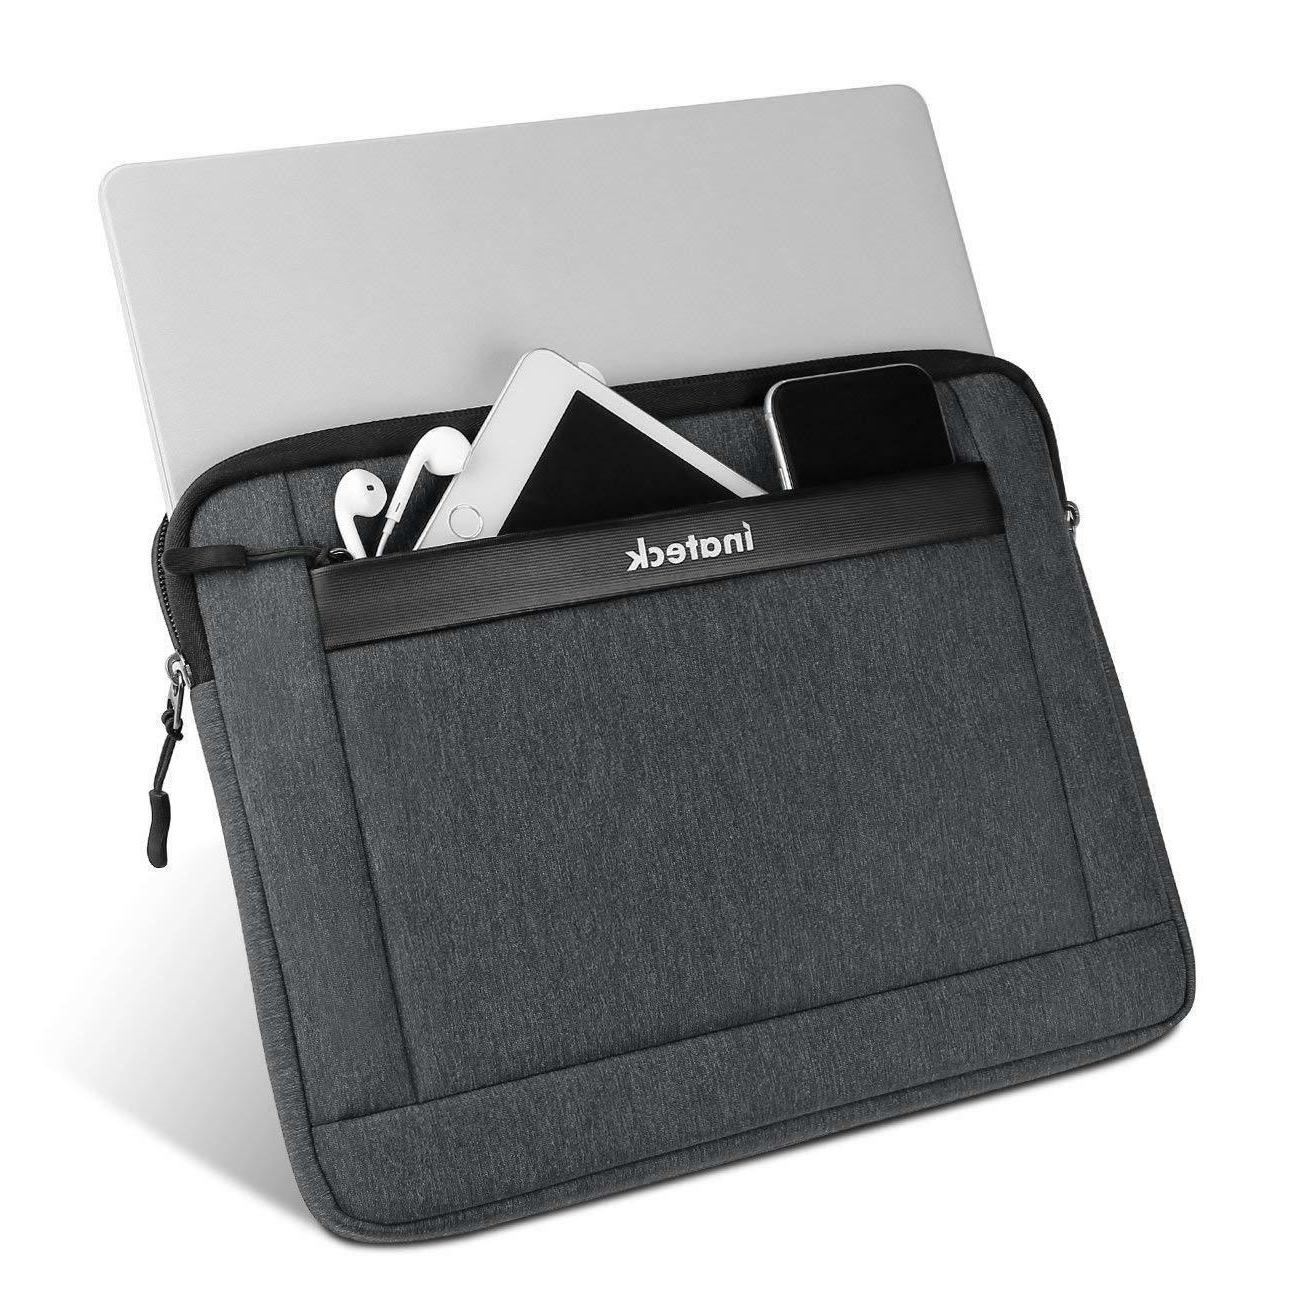 Inateck Laptop Sleeve Splash-proof Bag Macbook